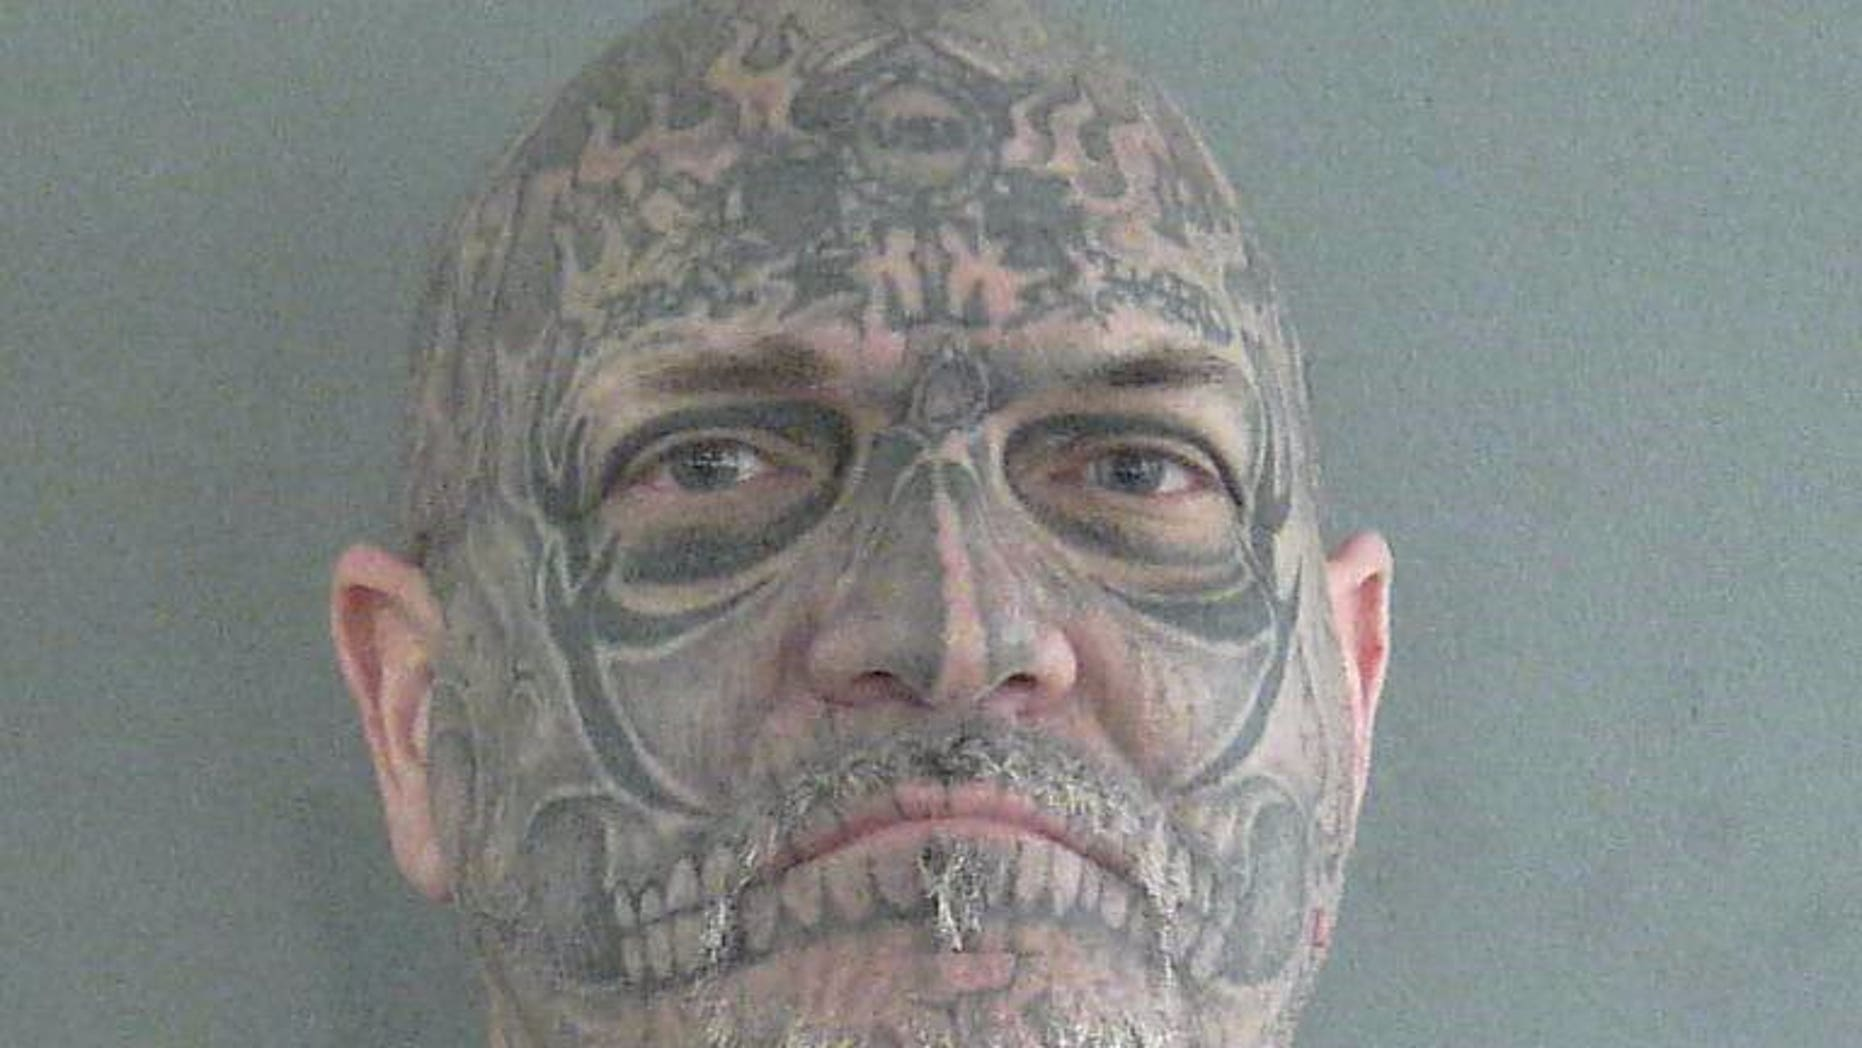 Man with skull-face tattoo arrested in 2001 Florida slaying